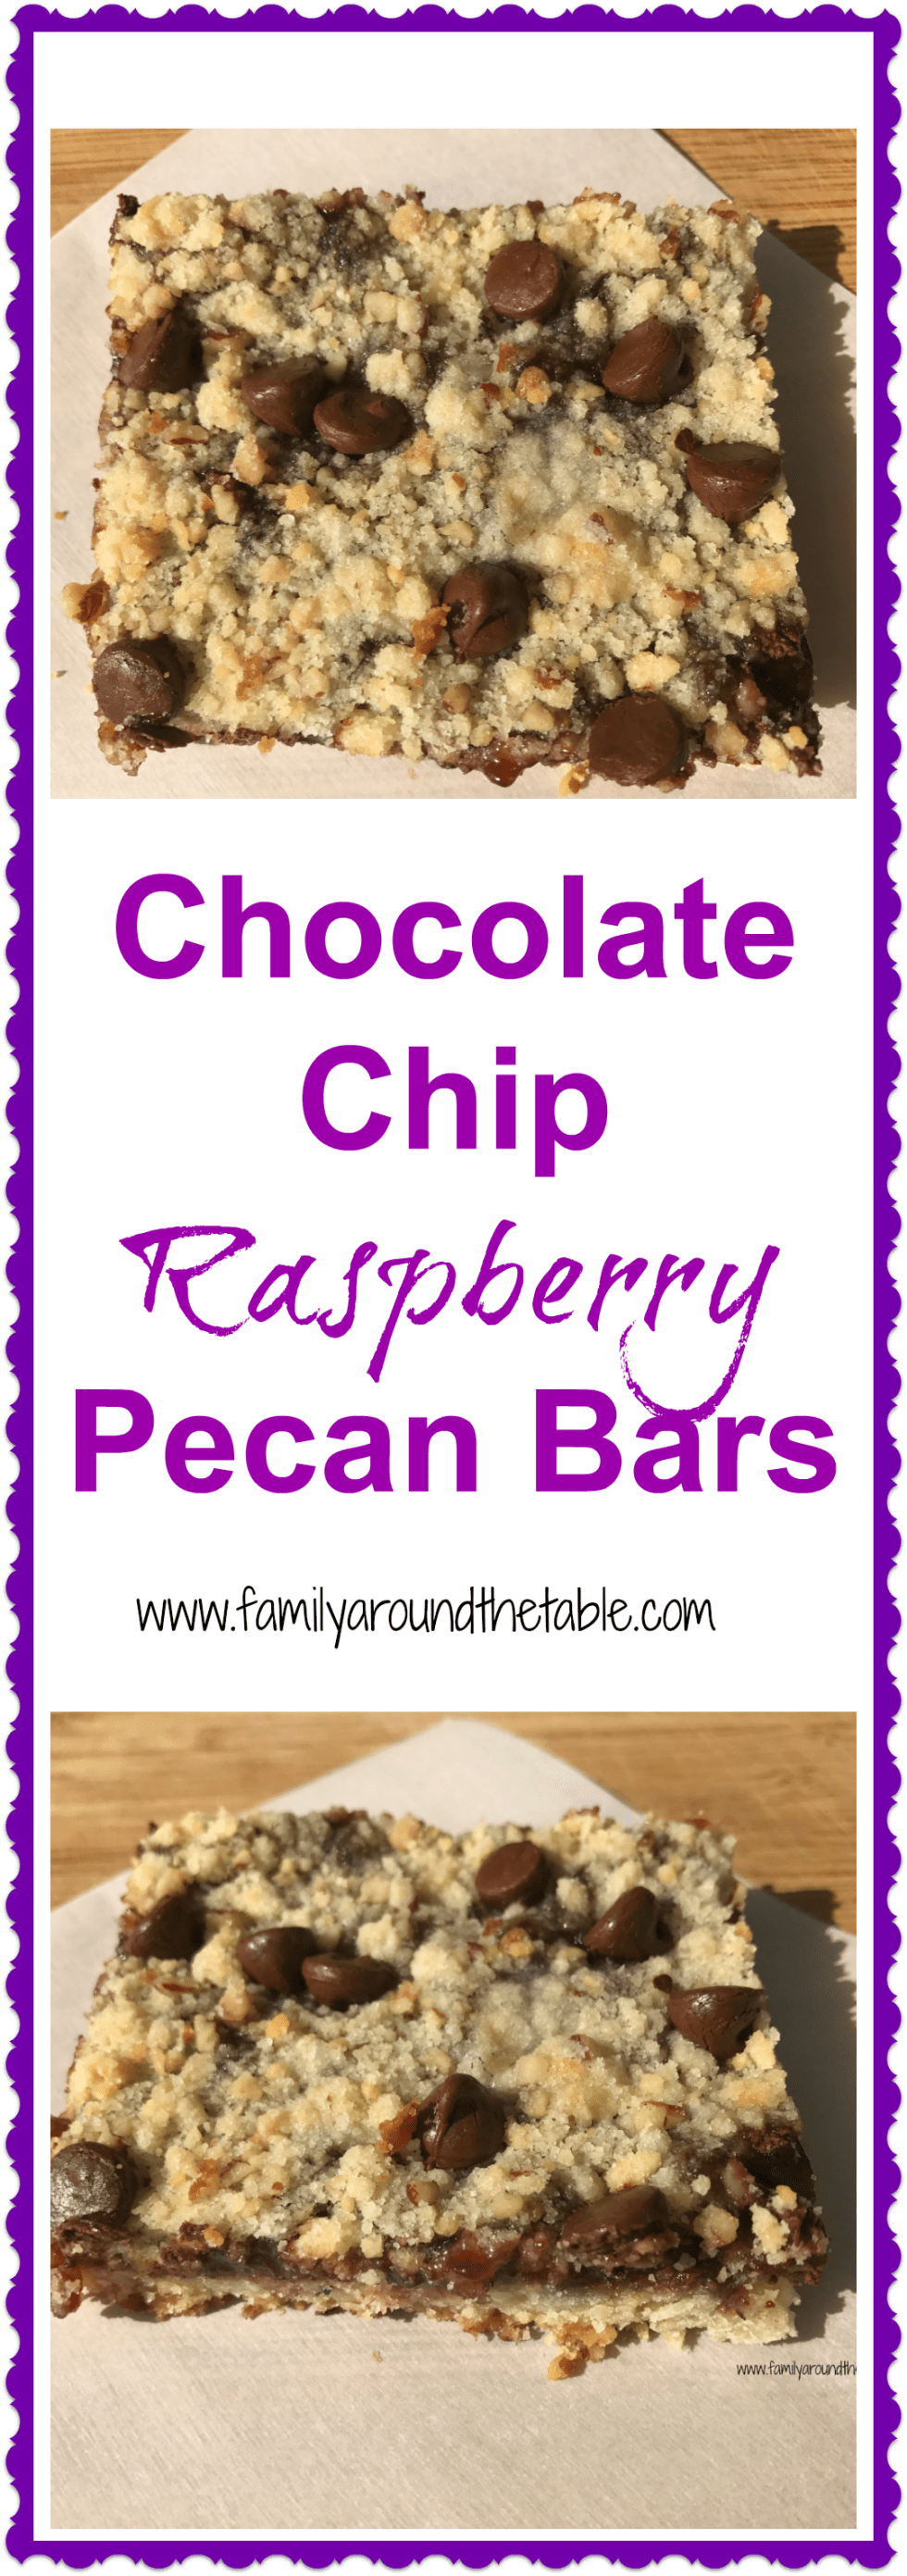 Chocolate Chip Raspberry Pecan Bars are a sweet treat for after school or dessert.